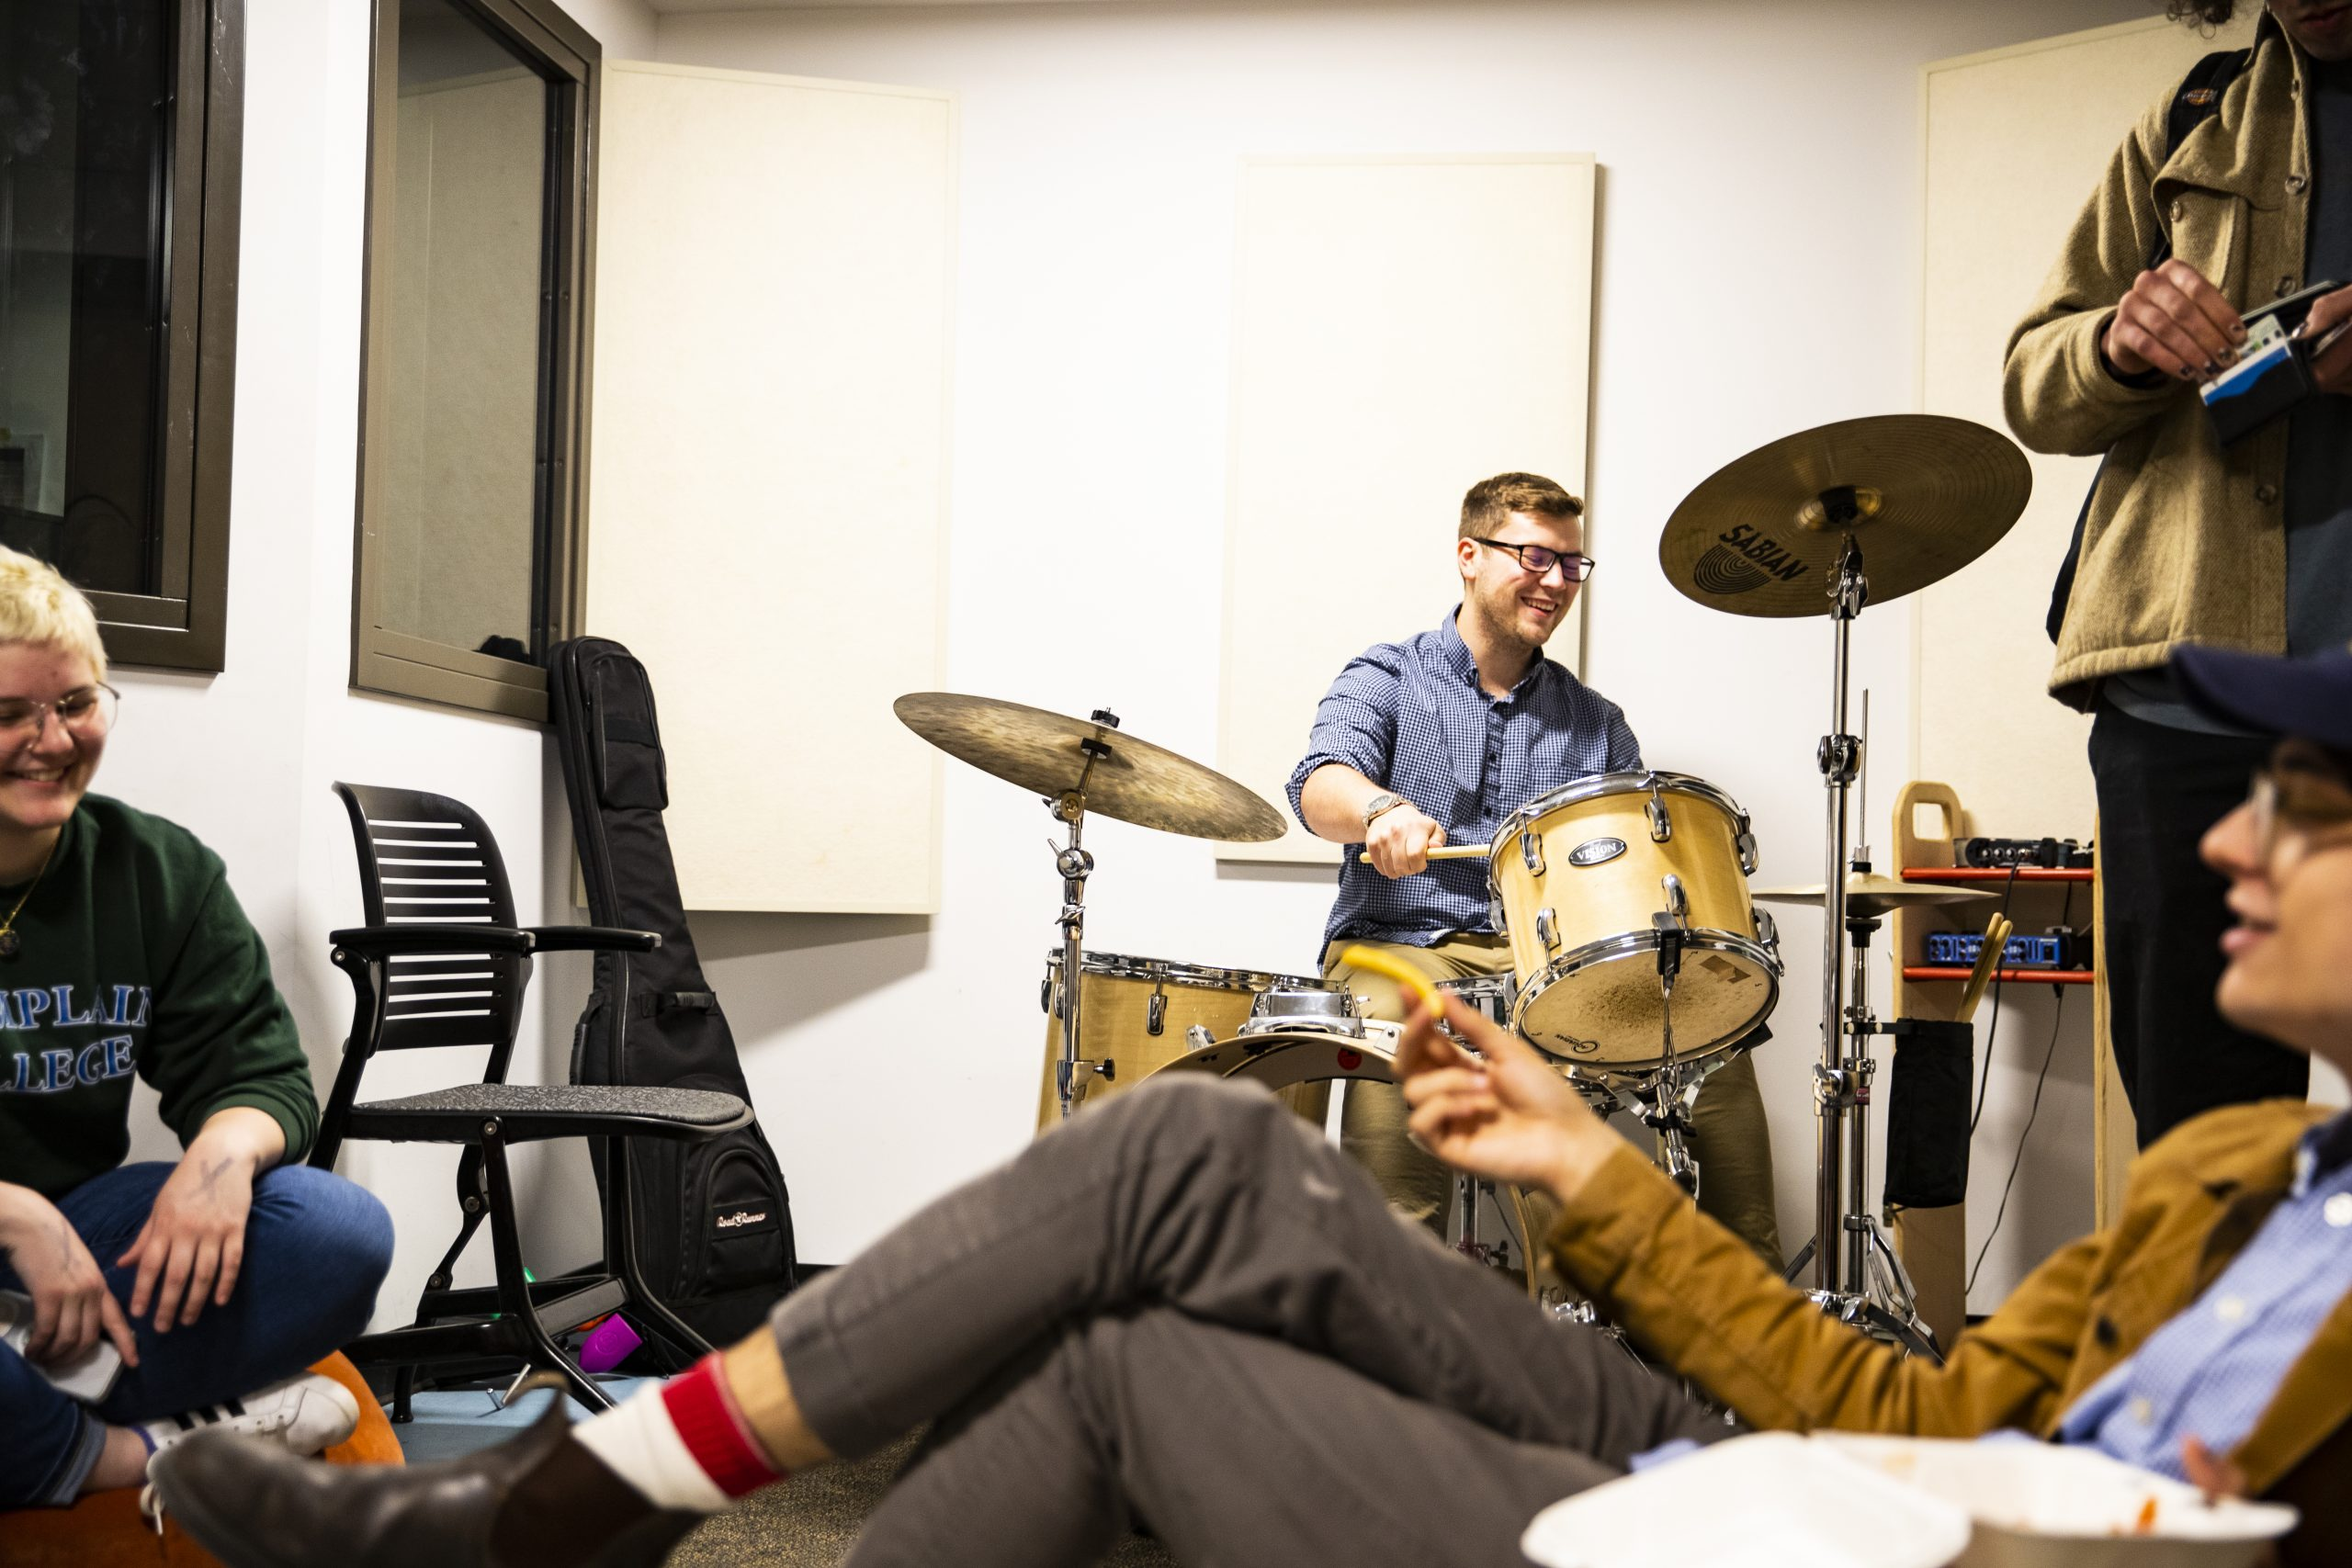 Group of students in a room playing drums and sitting on couches